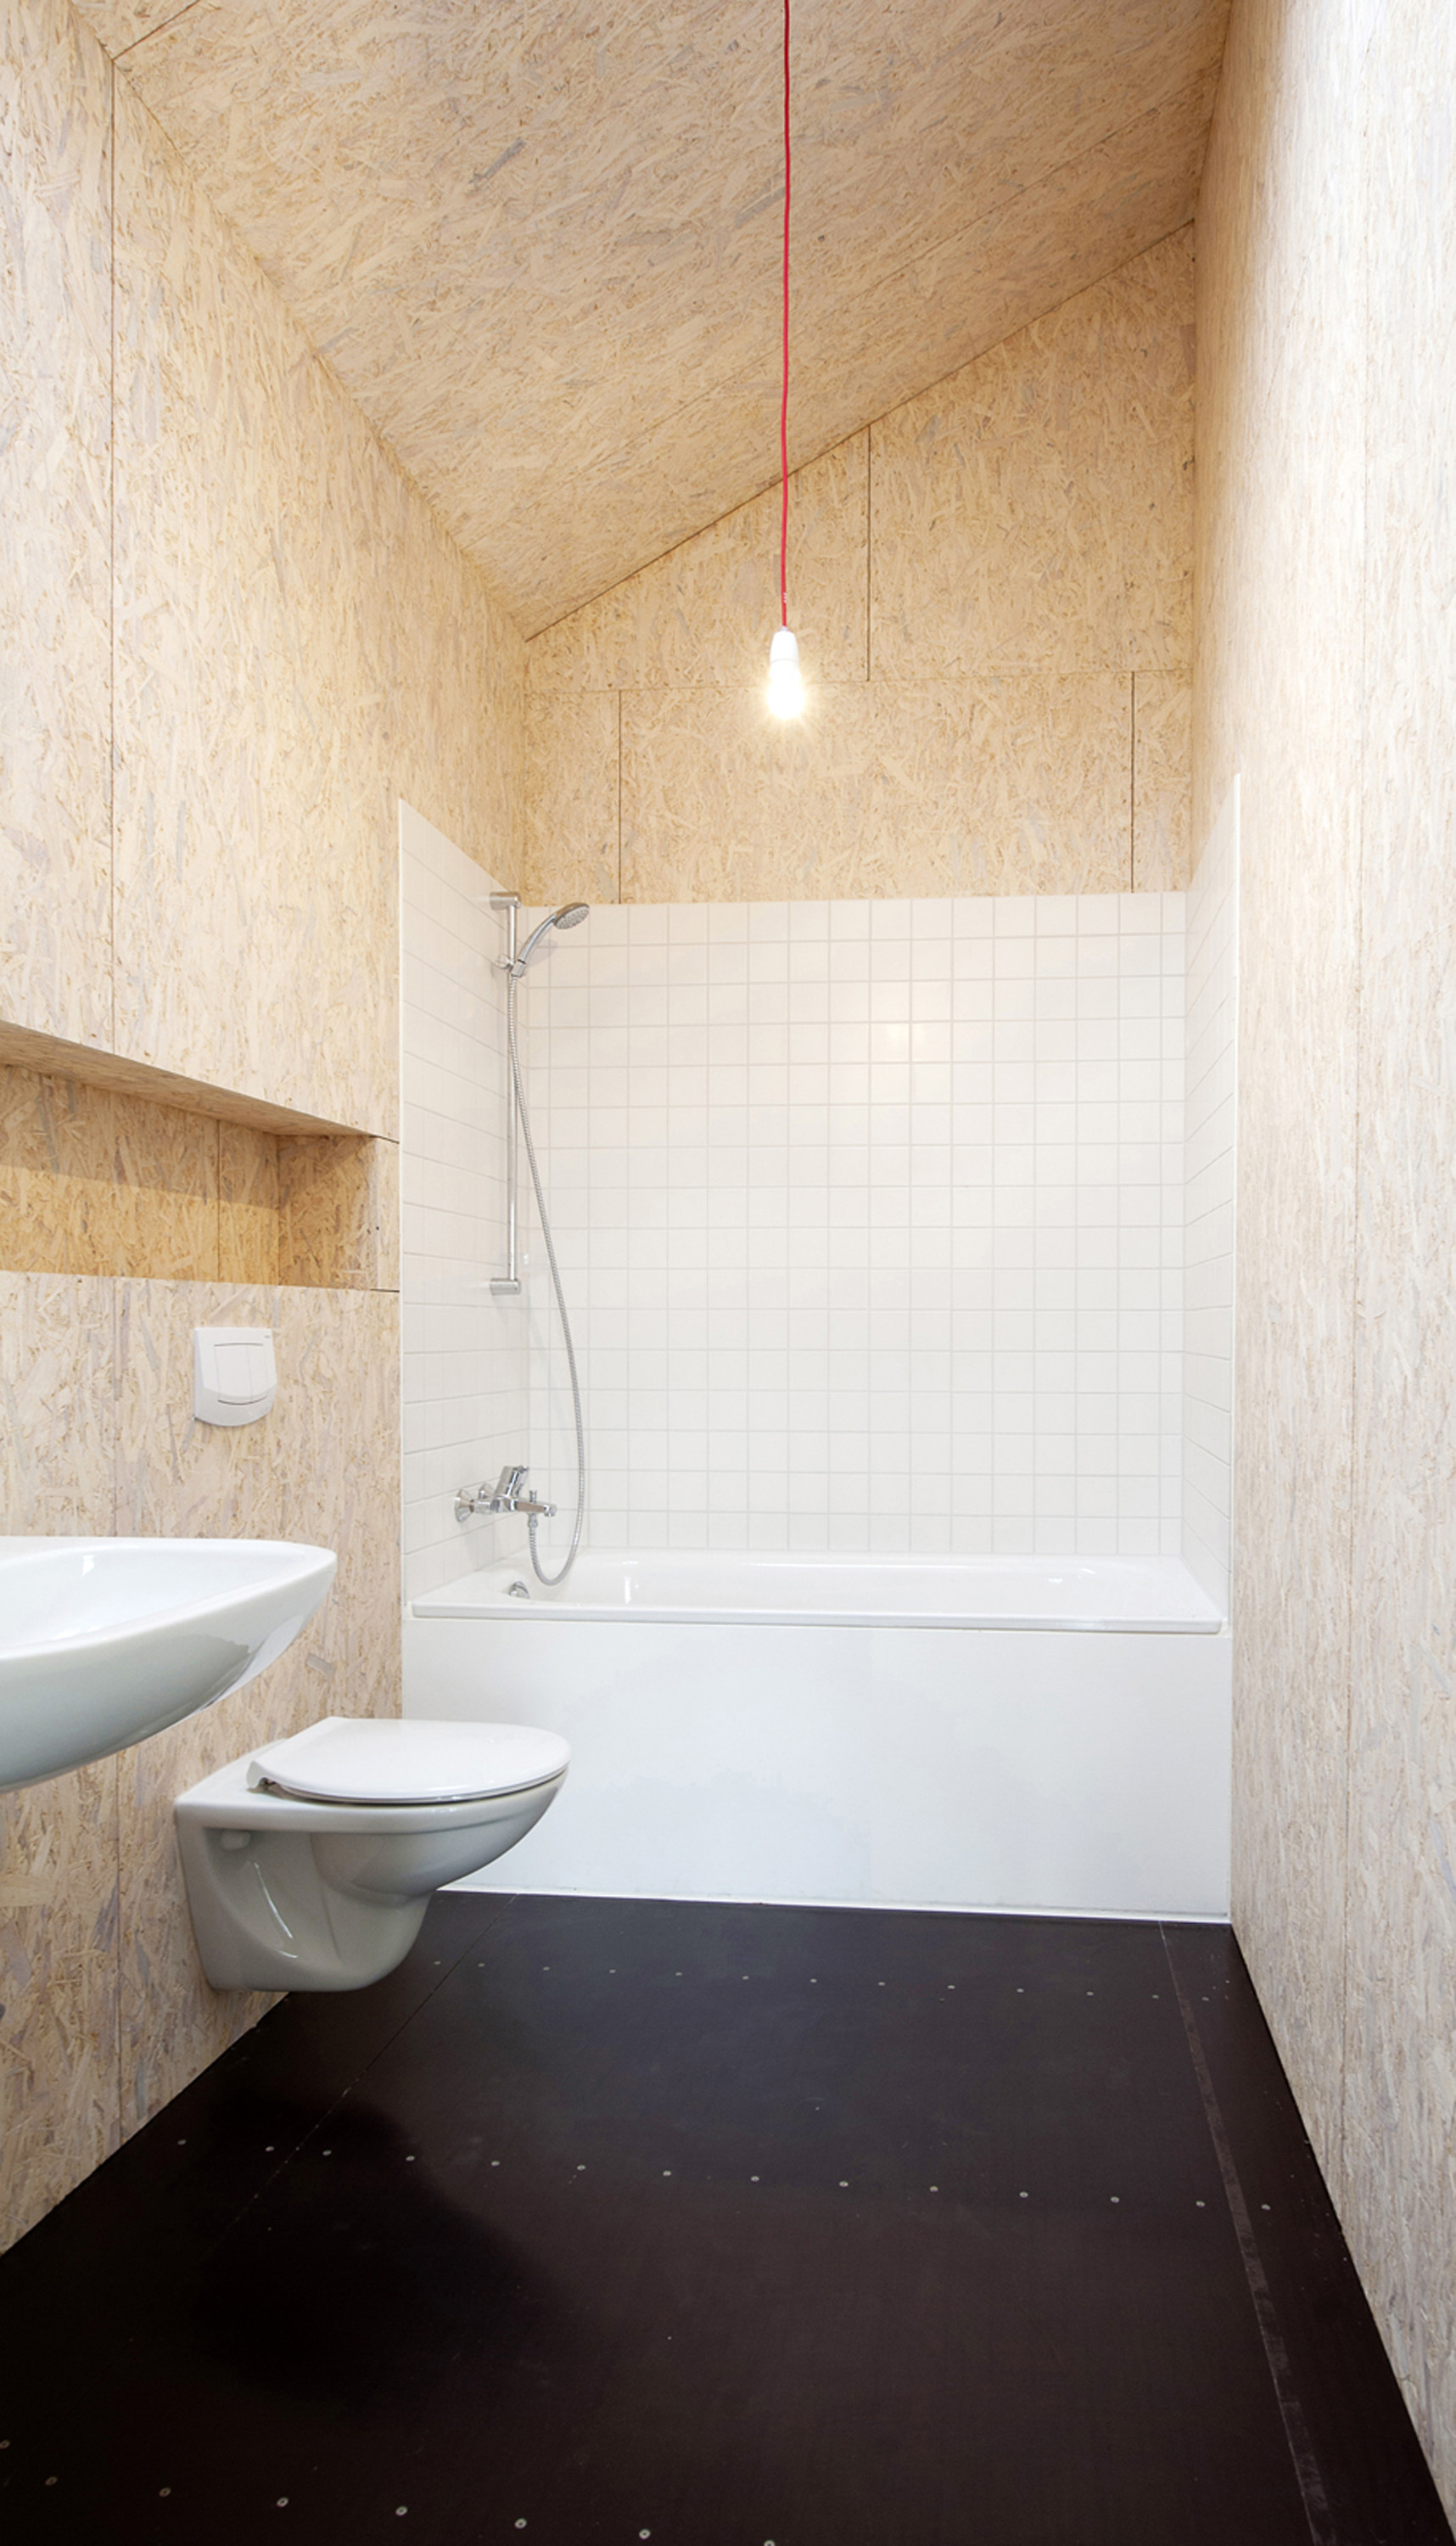 Multiplex Badezimmer Gallery Of House Unimog Fabian Evers Architecture Wezel